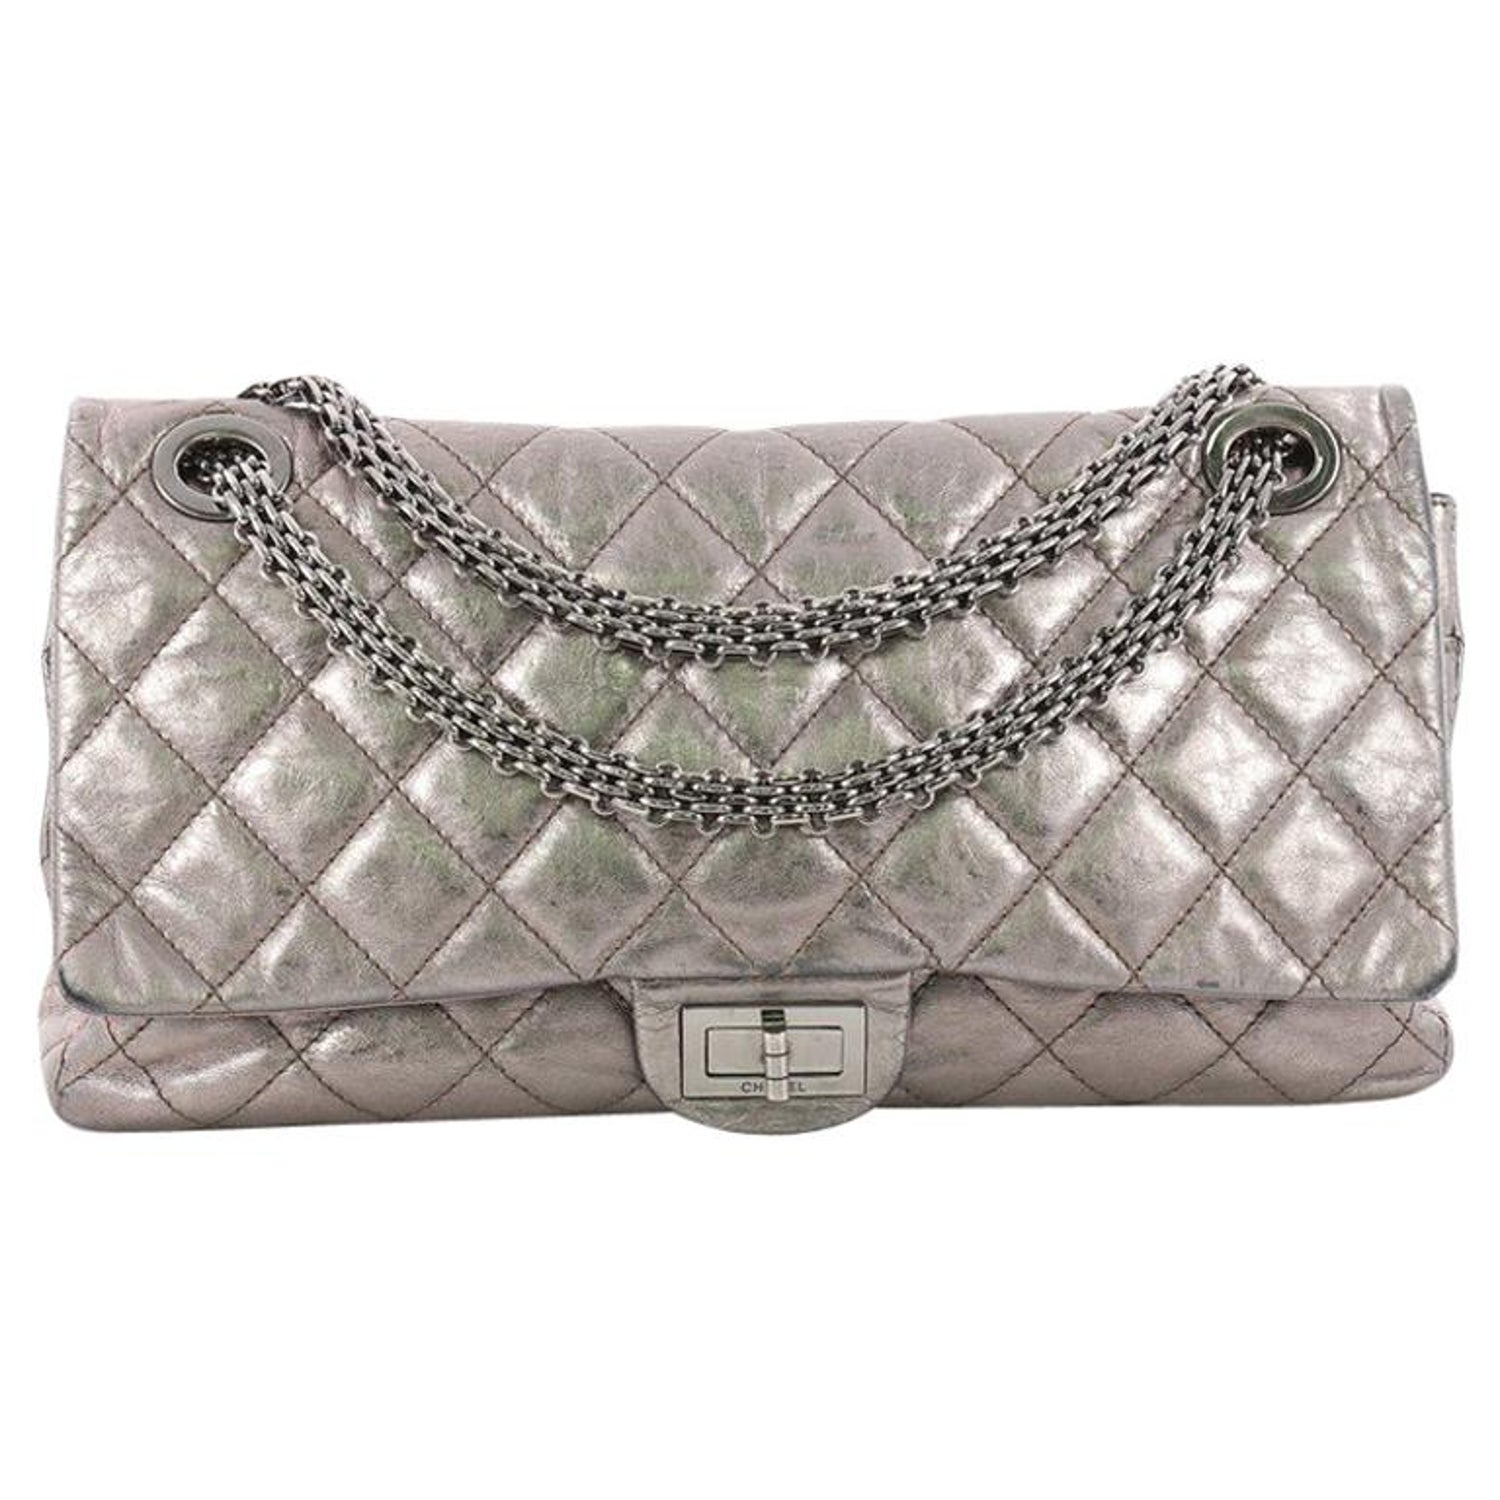 de95169073db7e Chanel Reissue 2.55 Handbag Quilted Metallic Aged Calfskin 228 at 1stdibs